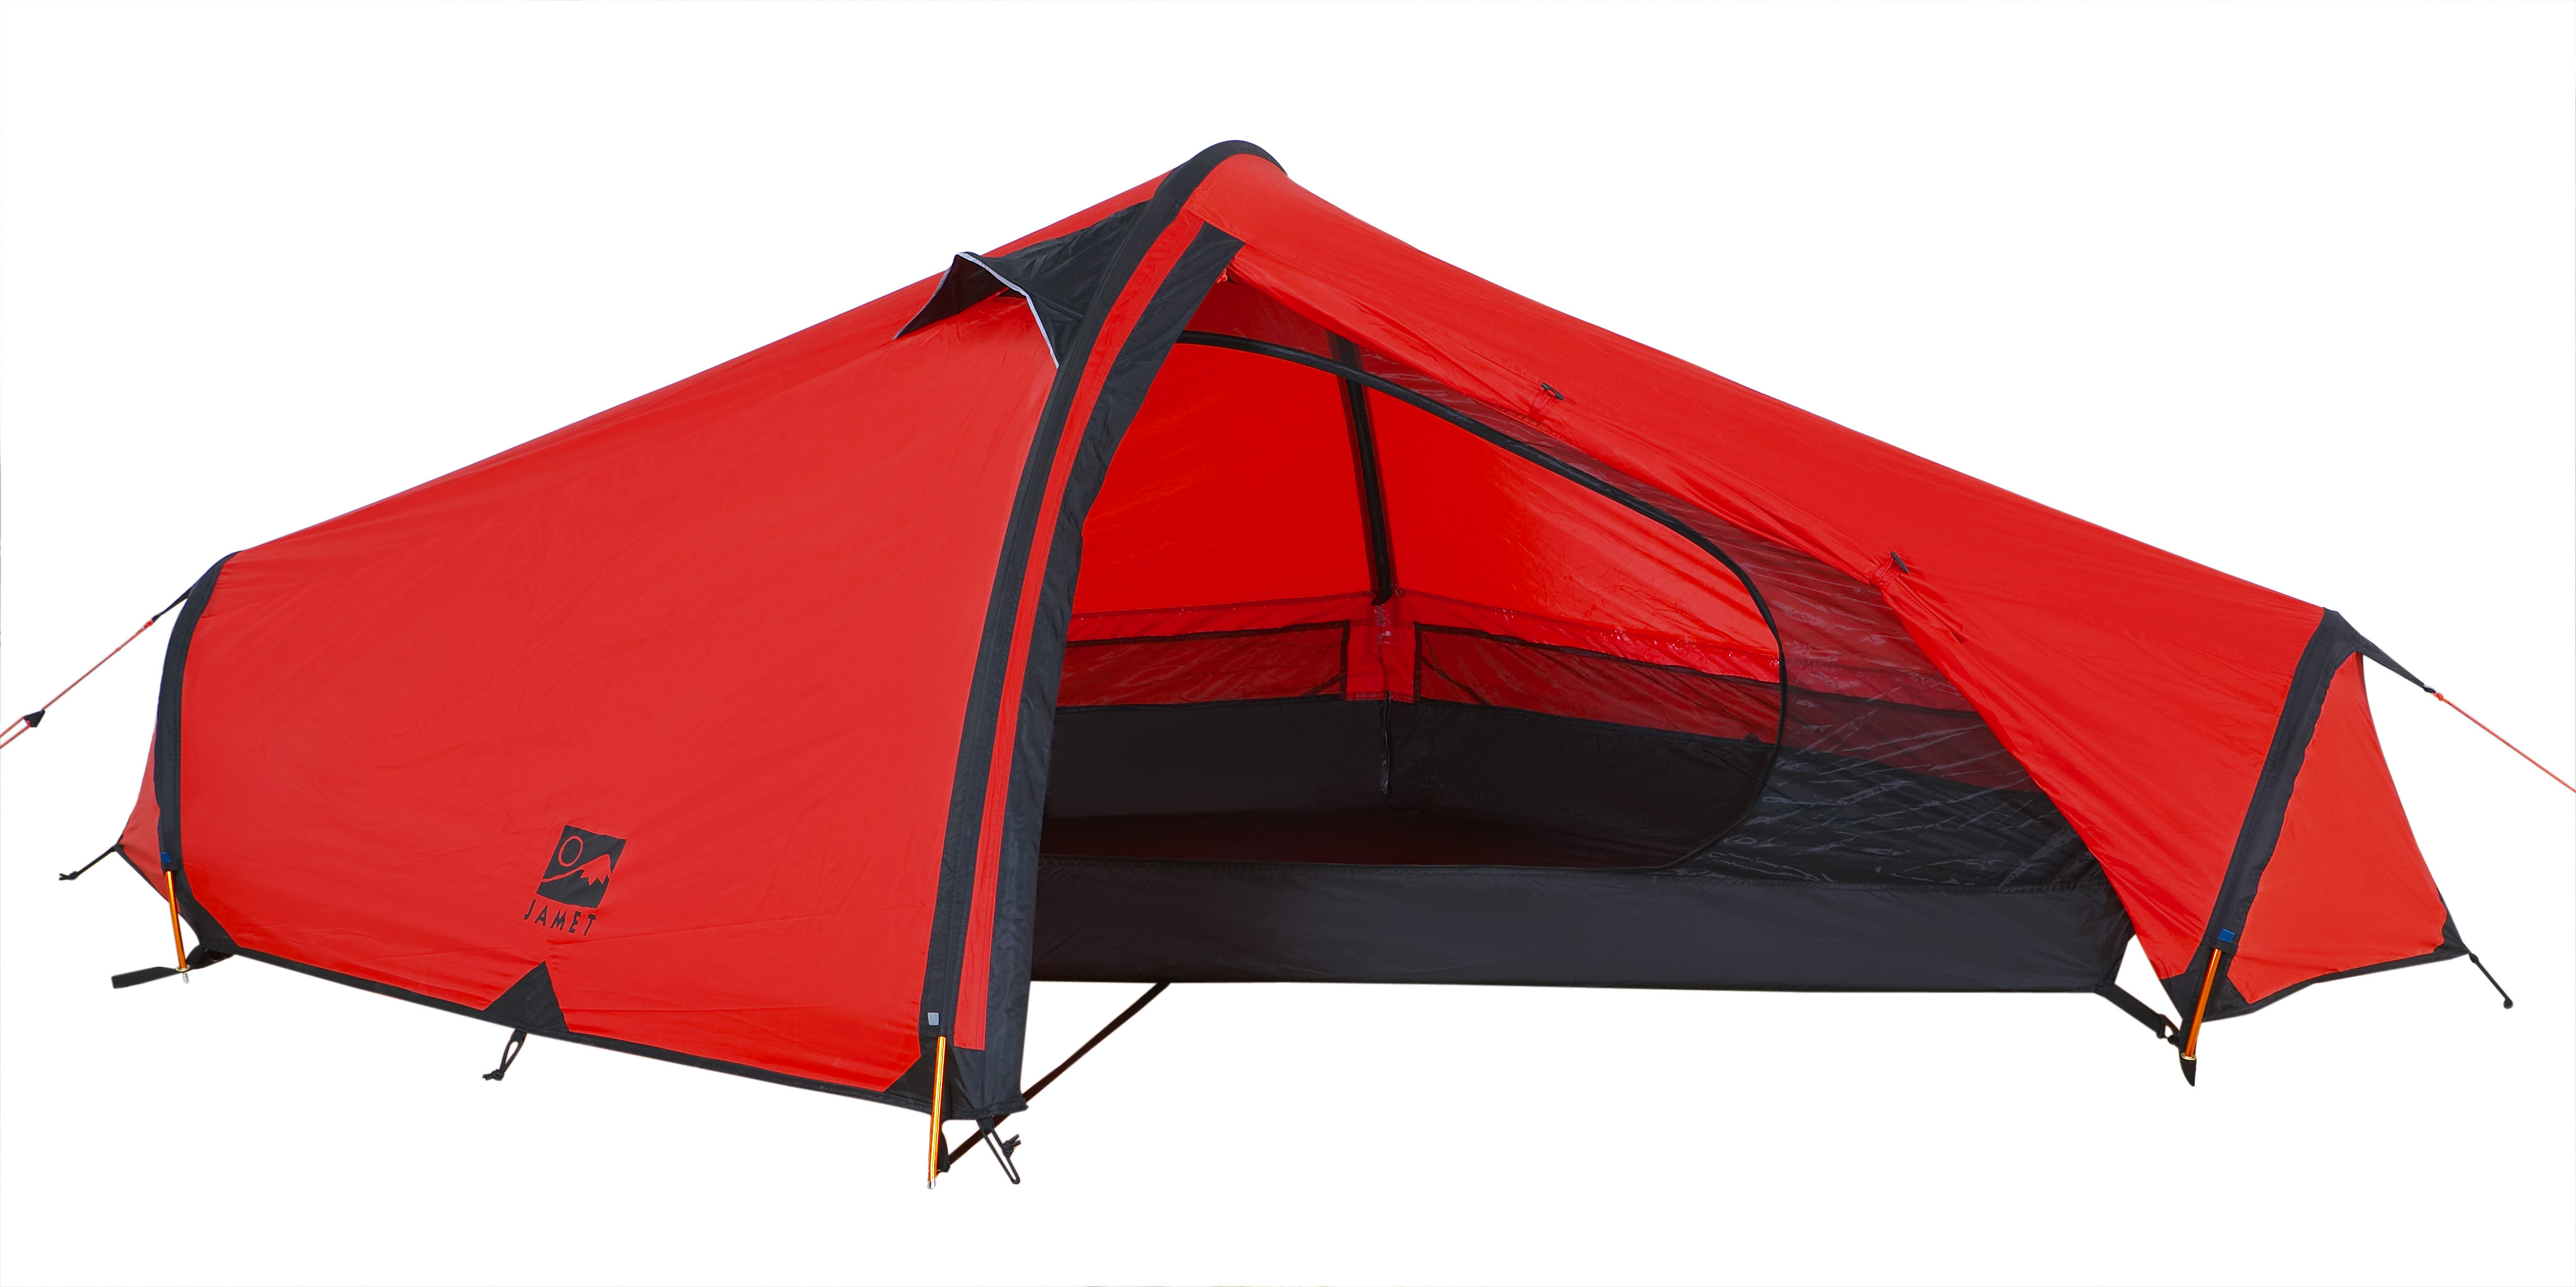 Jamet Granite 4000 Mountain Tent